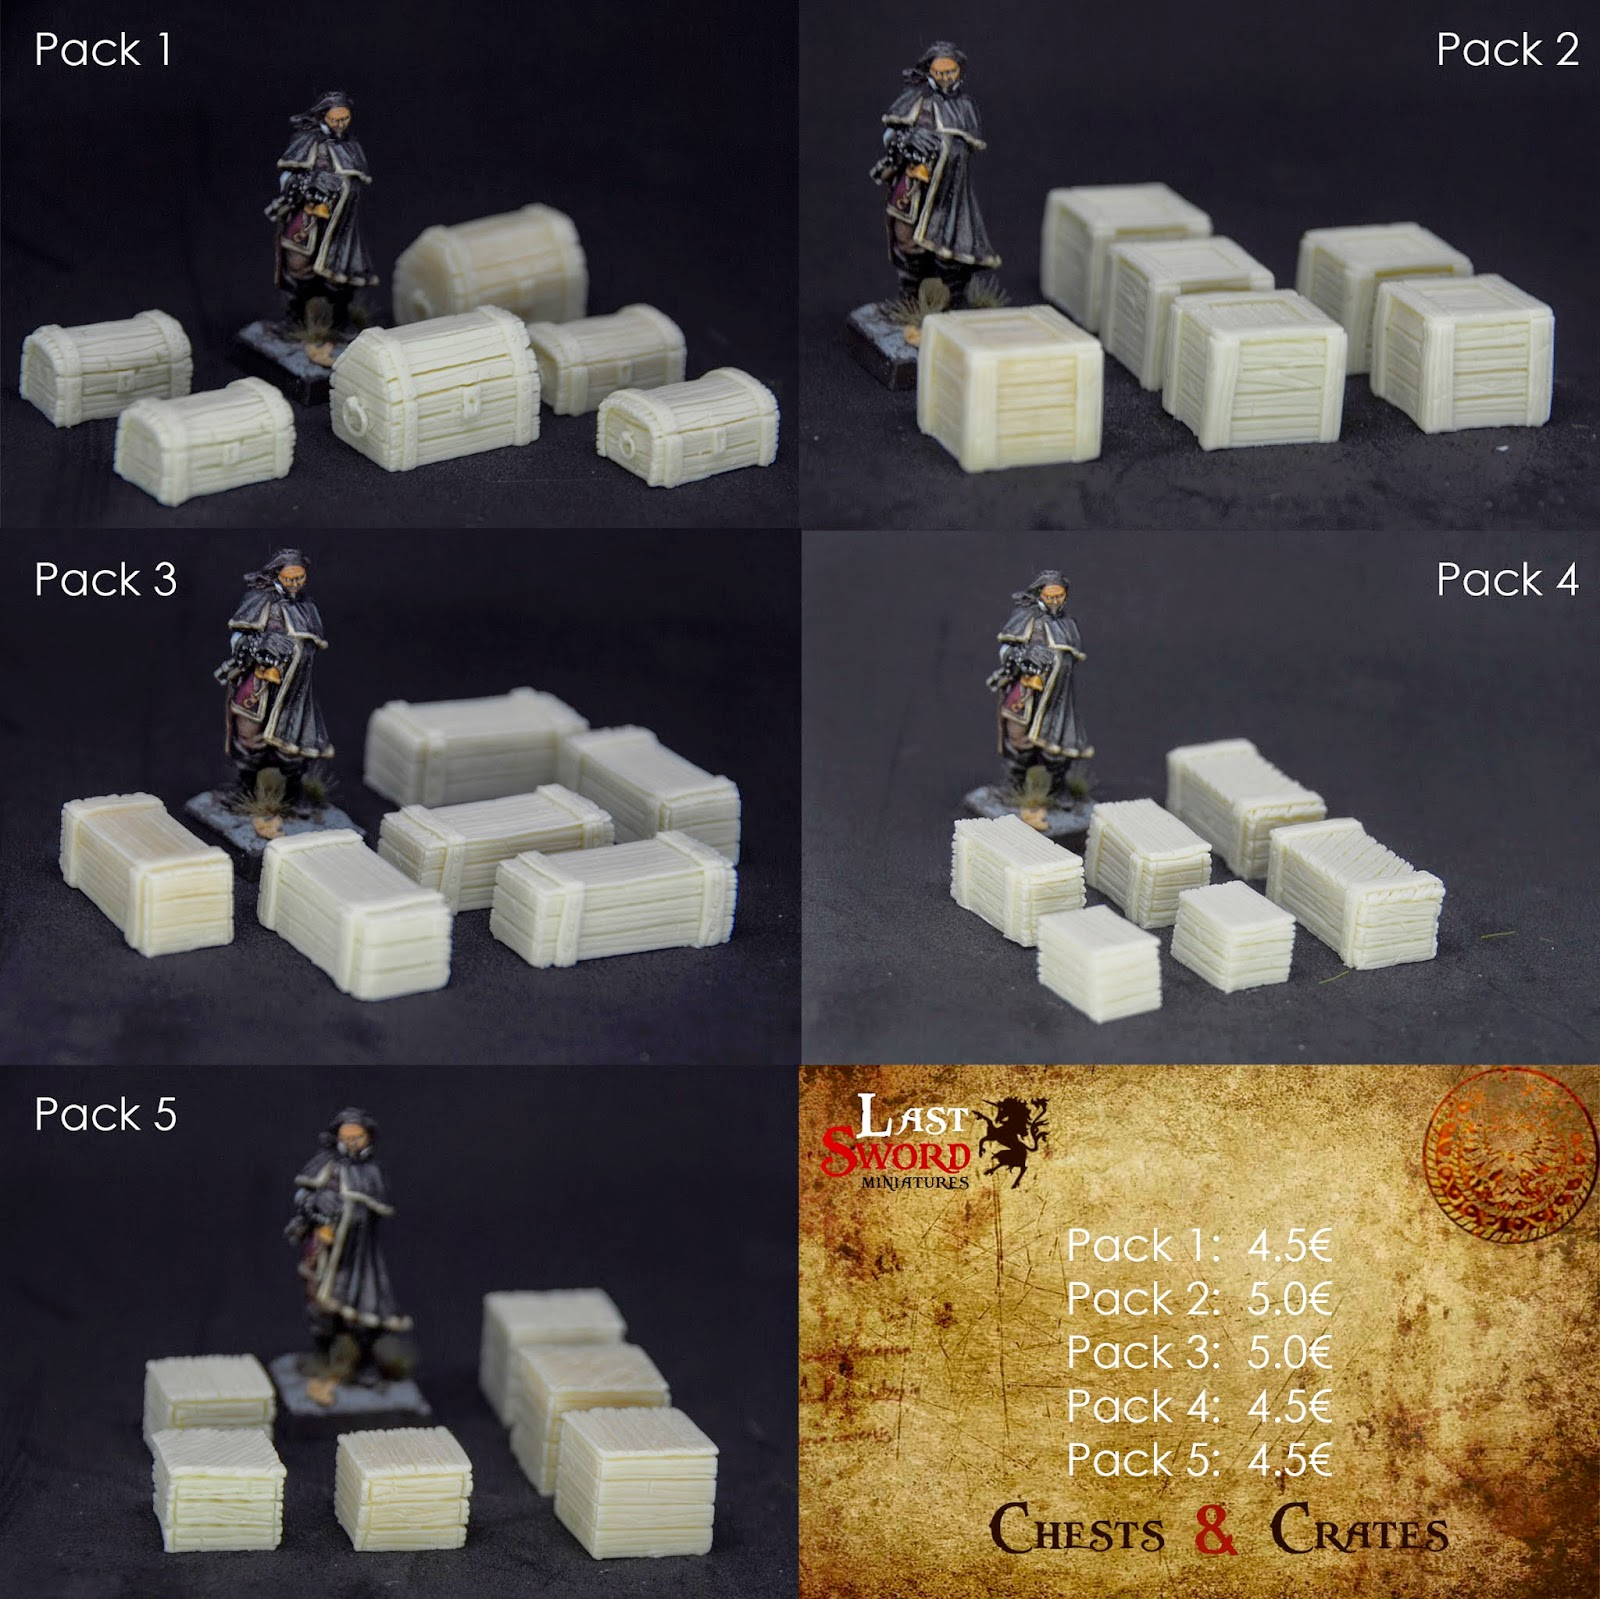 New and Old scenery. - Page 11 Pack%2BCartel%2B01